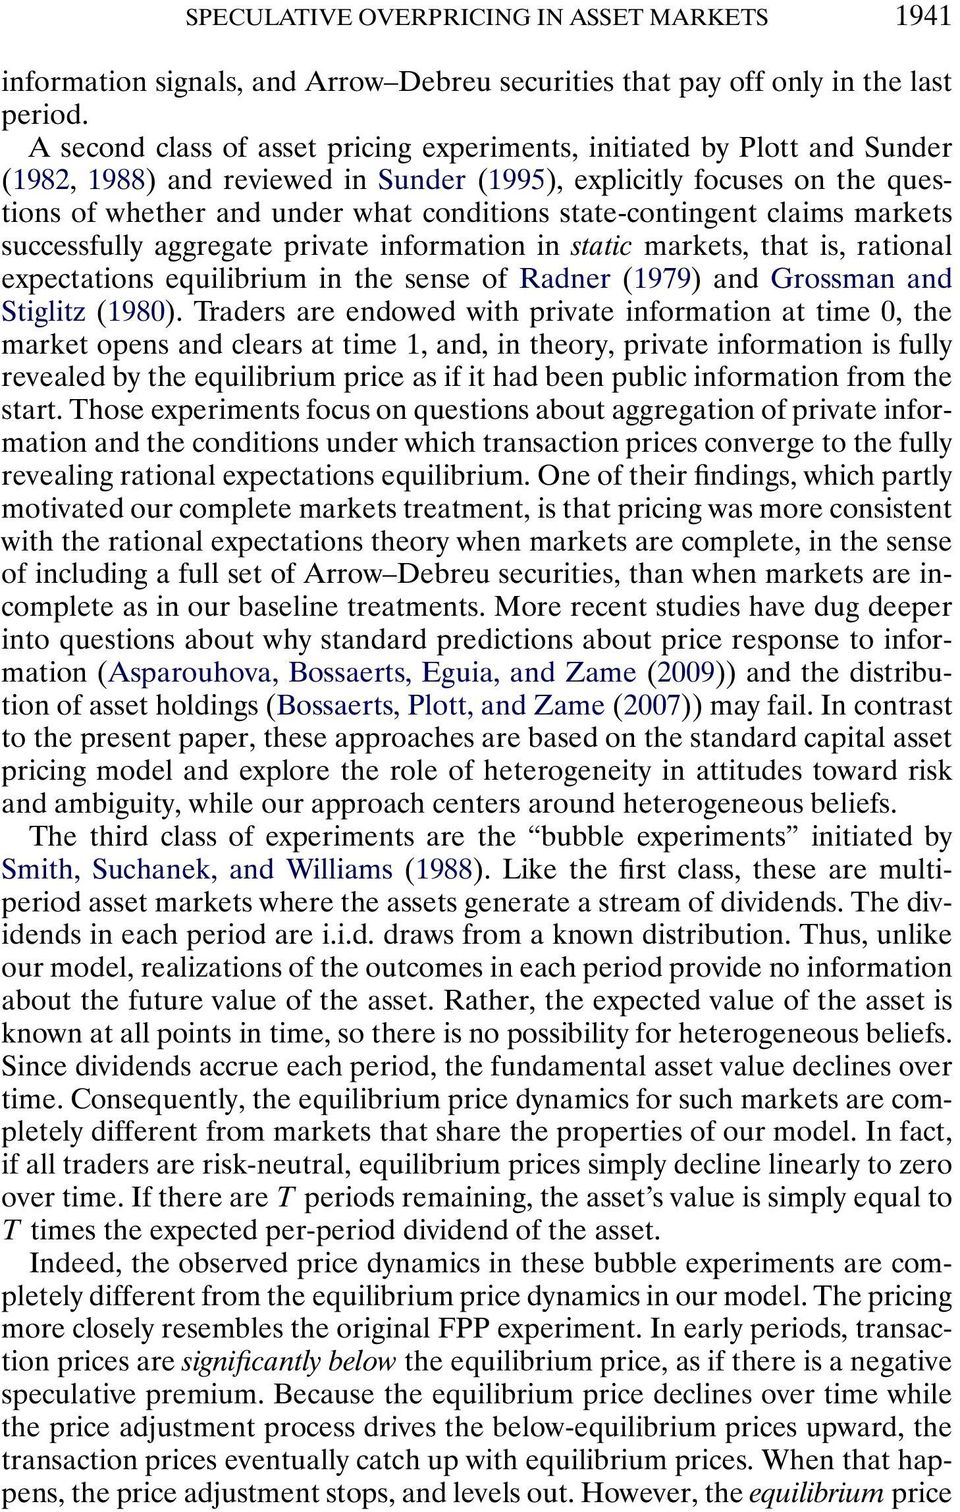 state-contingent claims markets successfully aggregate private information in static markets, that is, rational expectations equilibrium in the sense of Radner (17) and Grossman and Stiglitz (180).